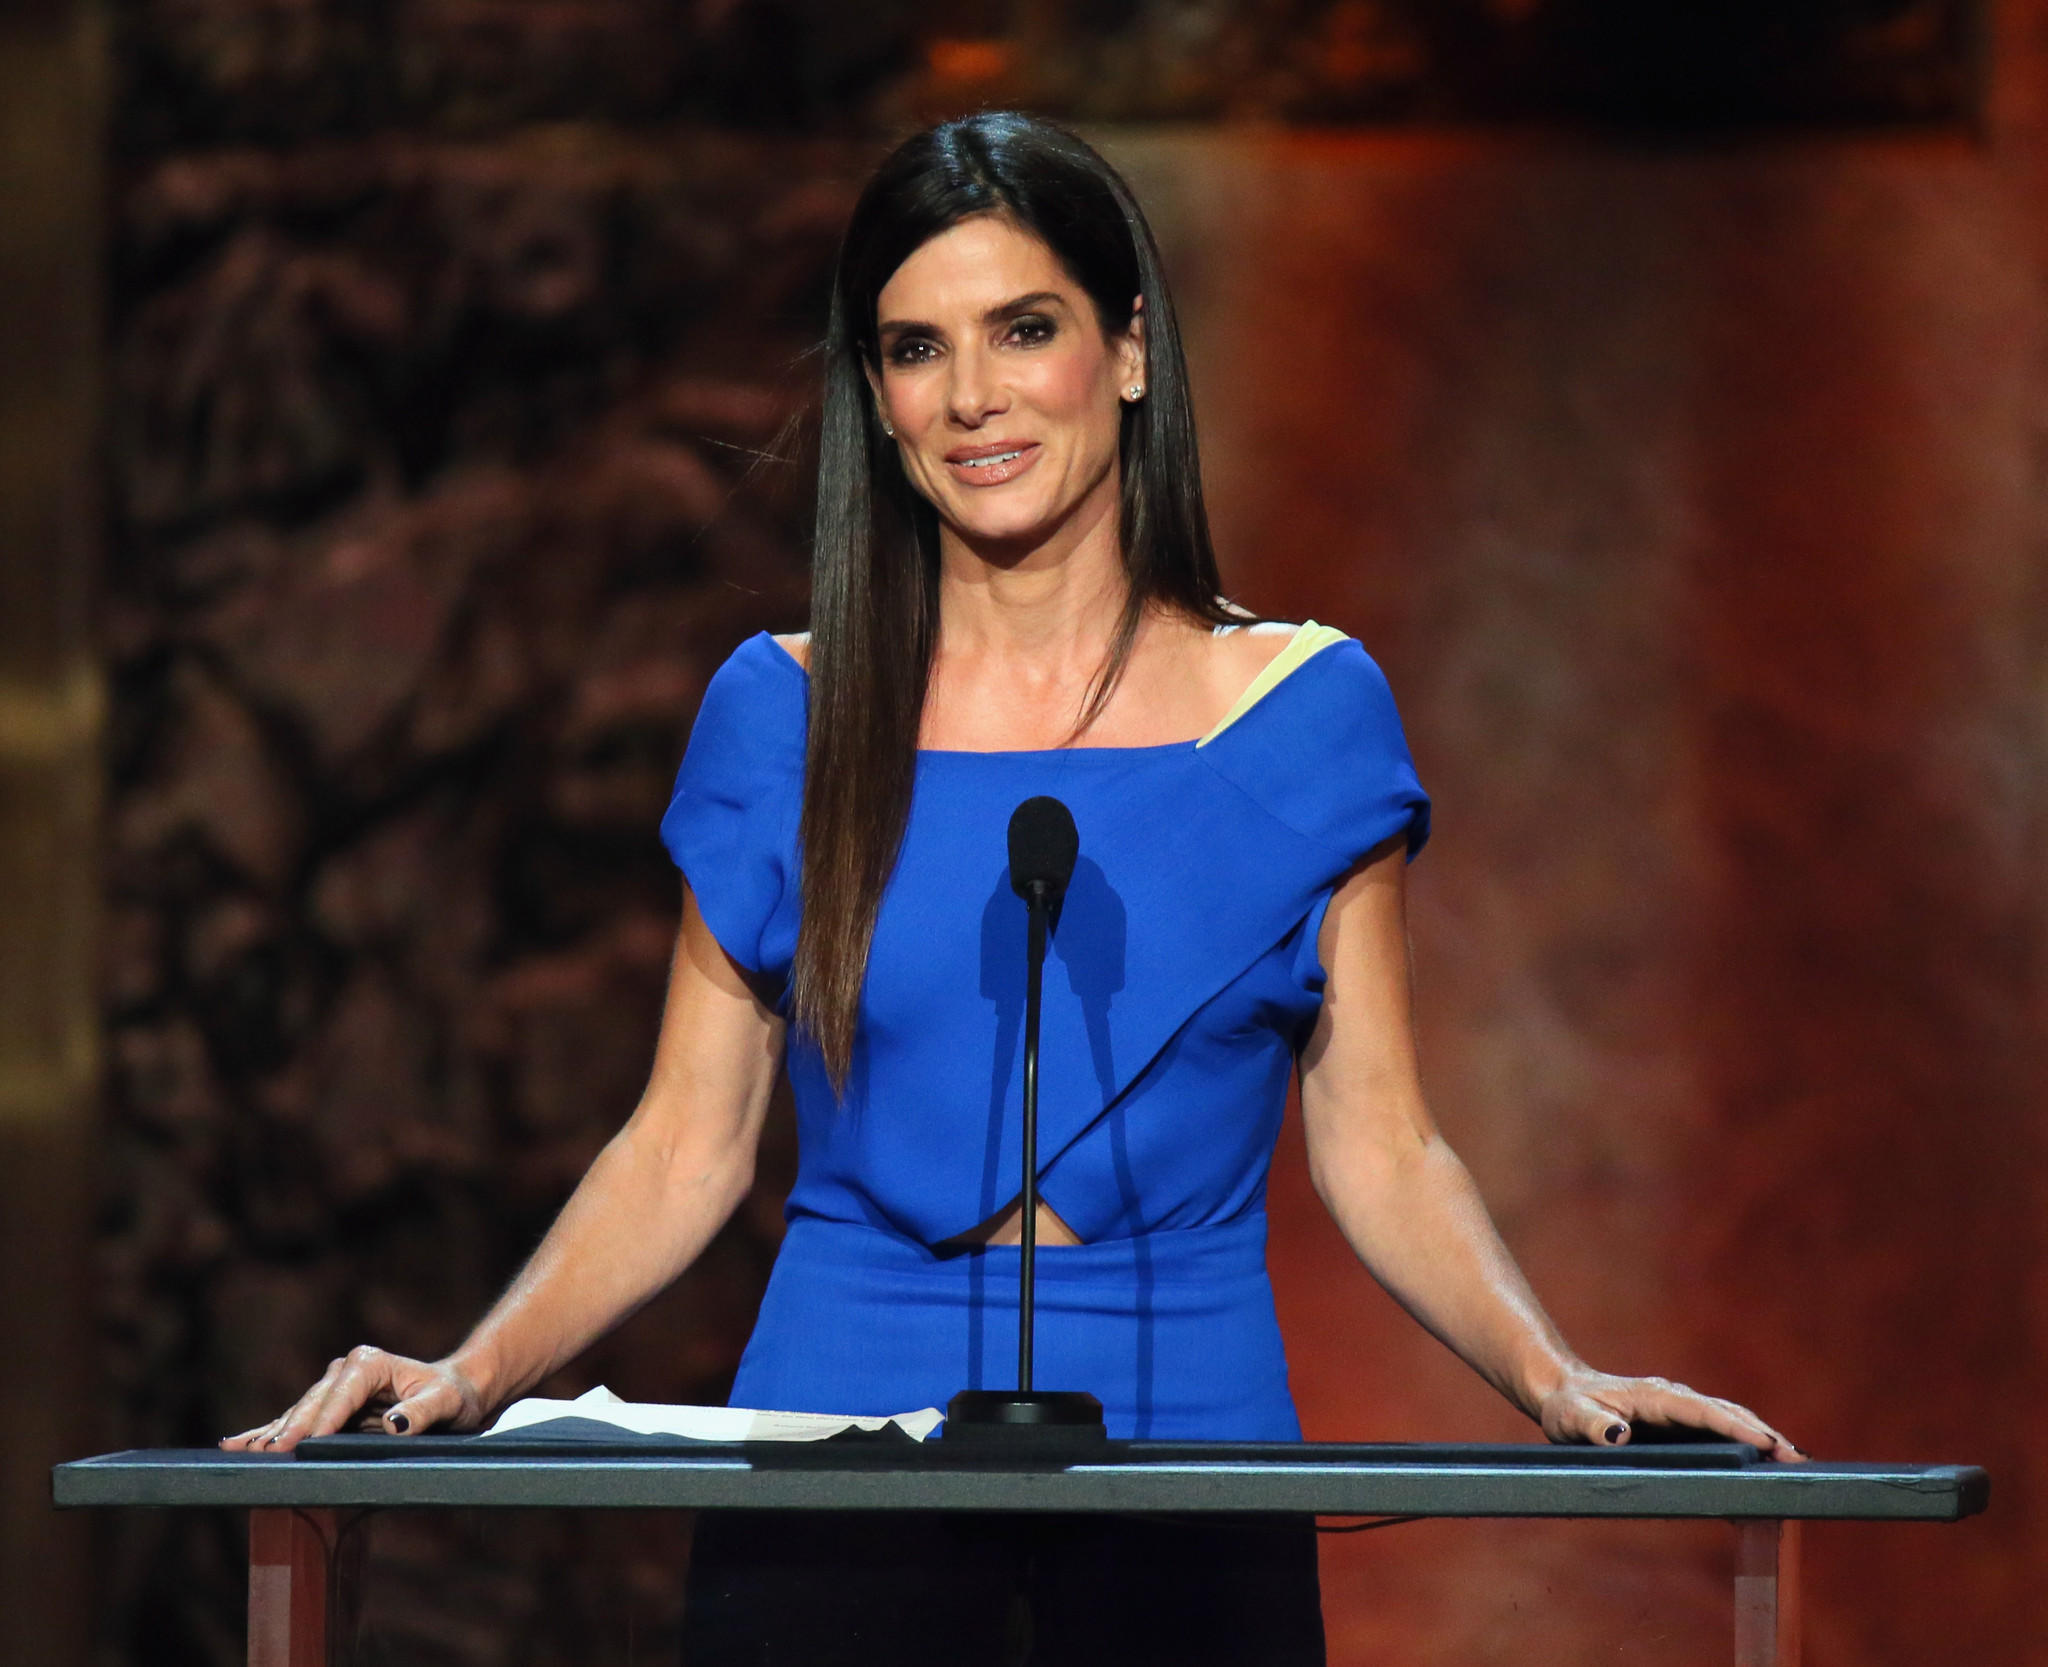 Sandra Bullock speaks onstage at the 2014 AFI Life Achievement Award: A Tribute to Jane Fonda at the Dolby Theatre on June 5, 2014.